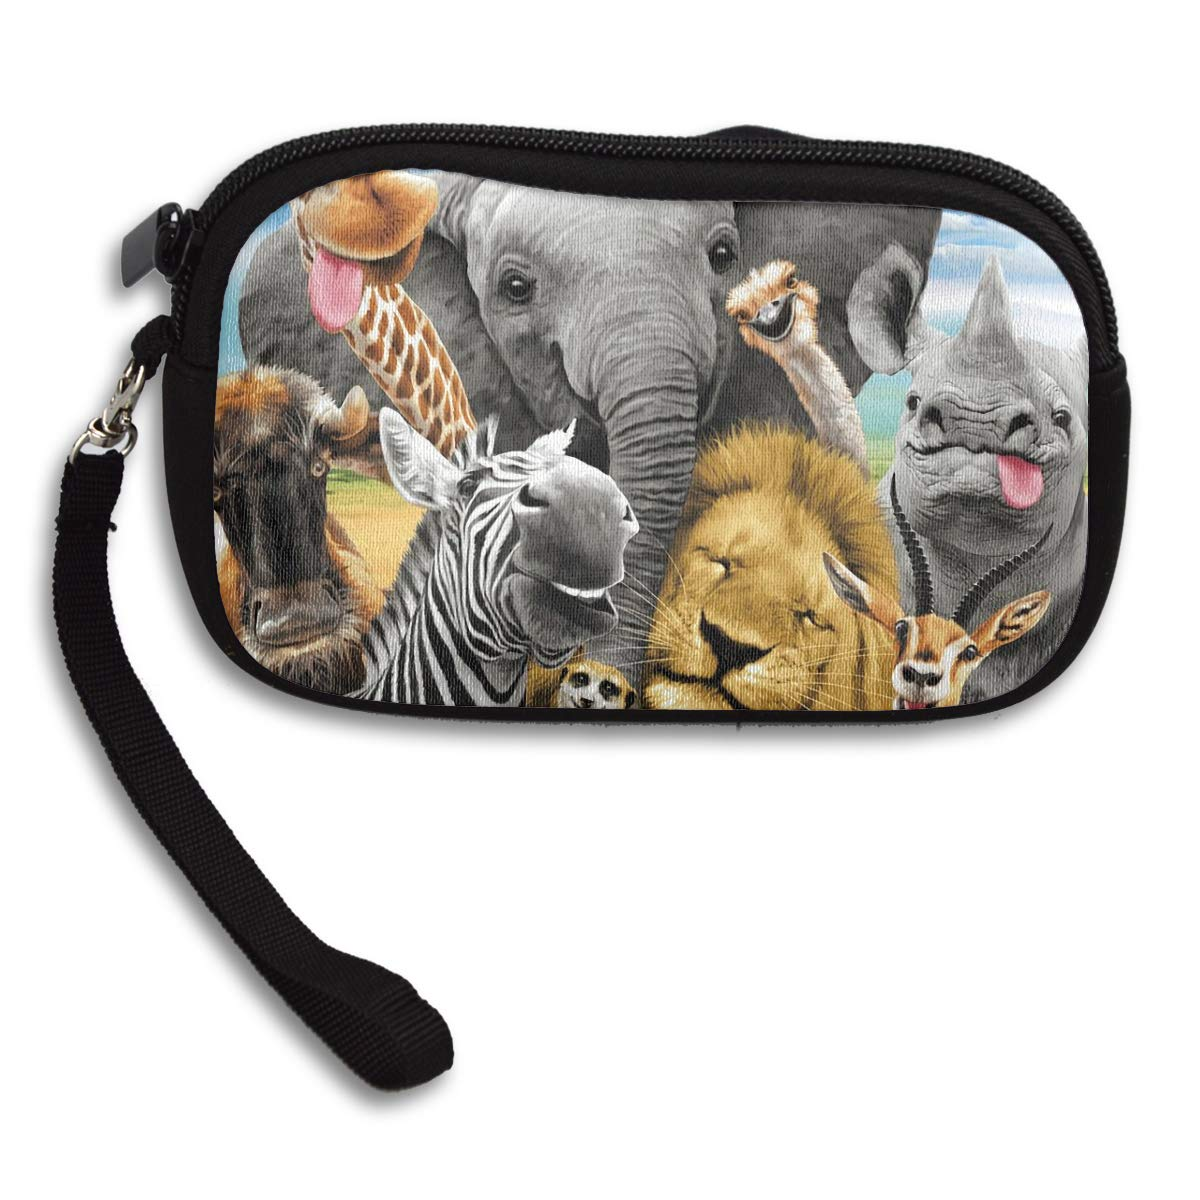 Coin Purse African Safari Animals Selfie Coin Pouch With Zipper,Make Up Bag,Wallet Bag Change Pouch Key Holder